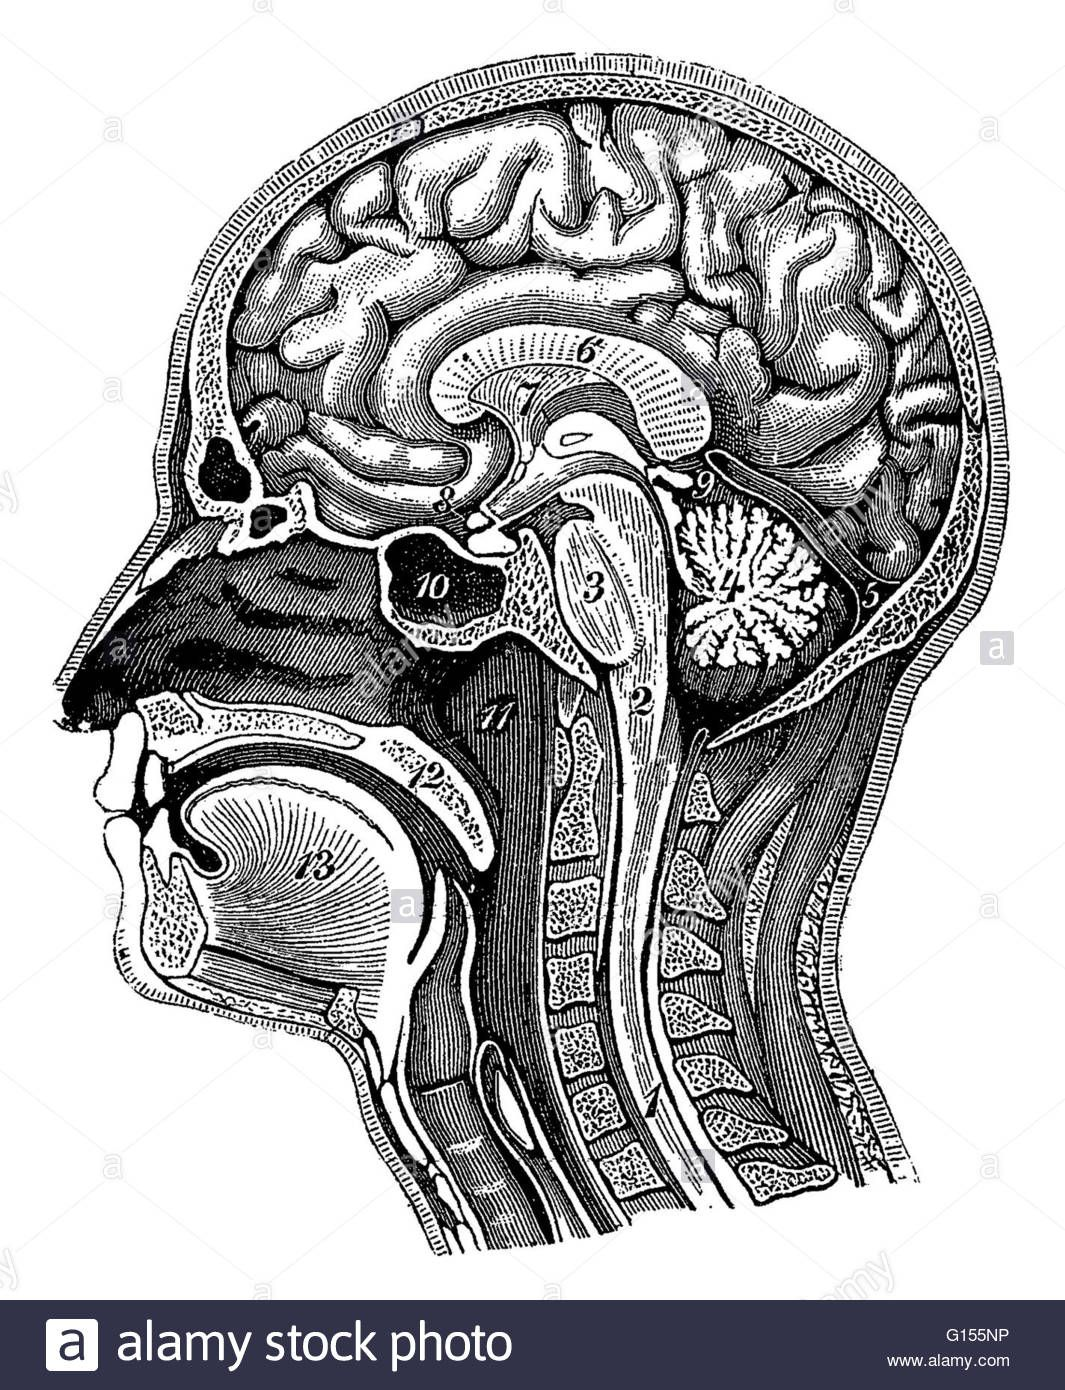 Illustration Of A Cross Section Of The Head Showing The